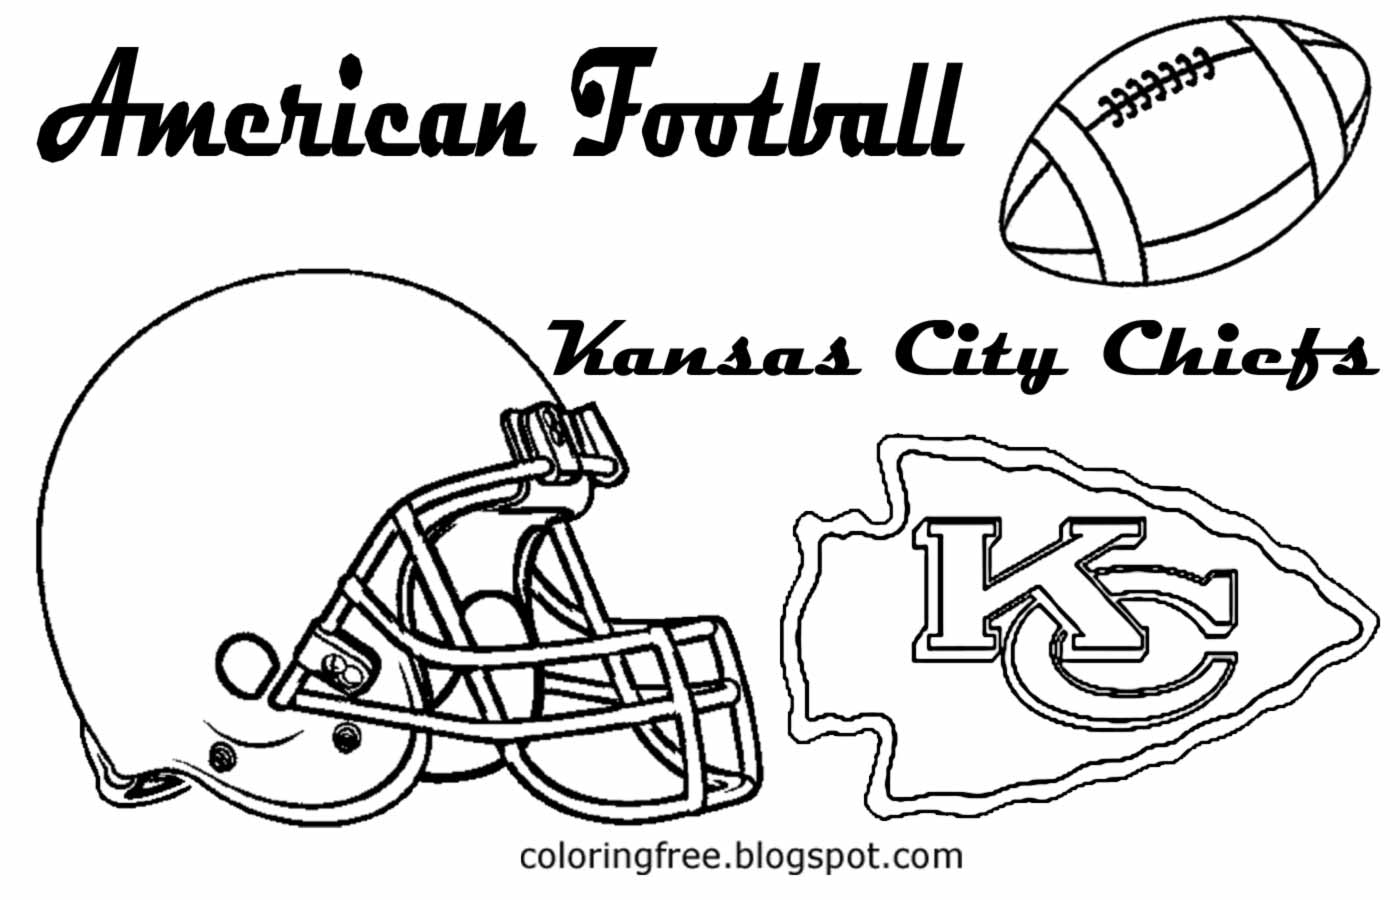 kansas city chiefs coloring pages printable clip art kansas city chiefs logo kansas city chiefs pages city coloring kansas